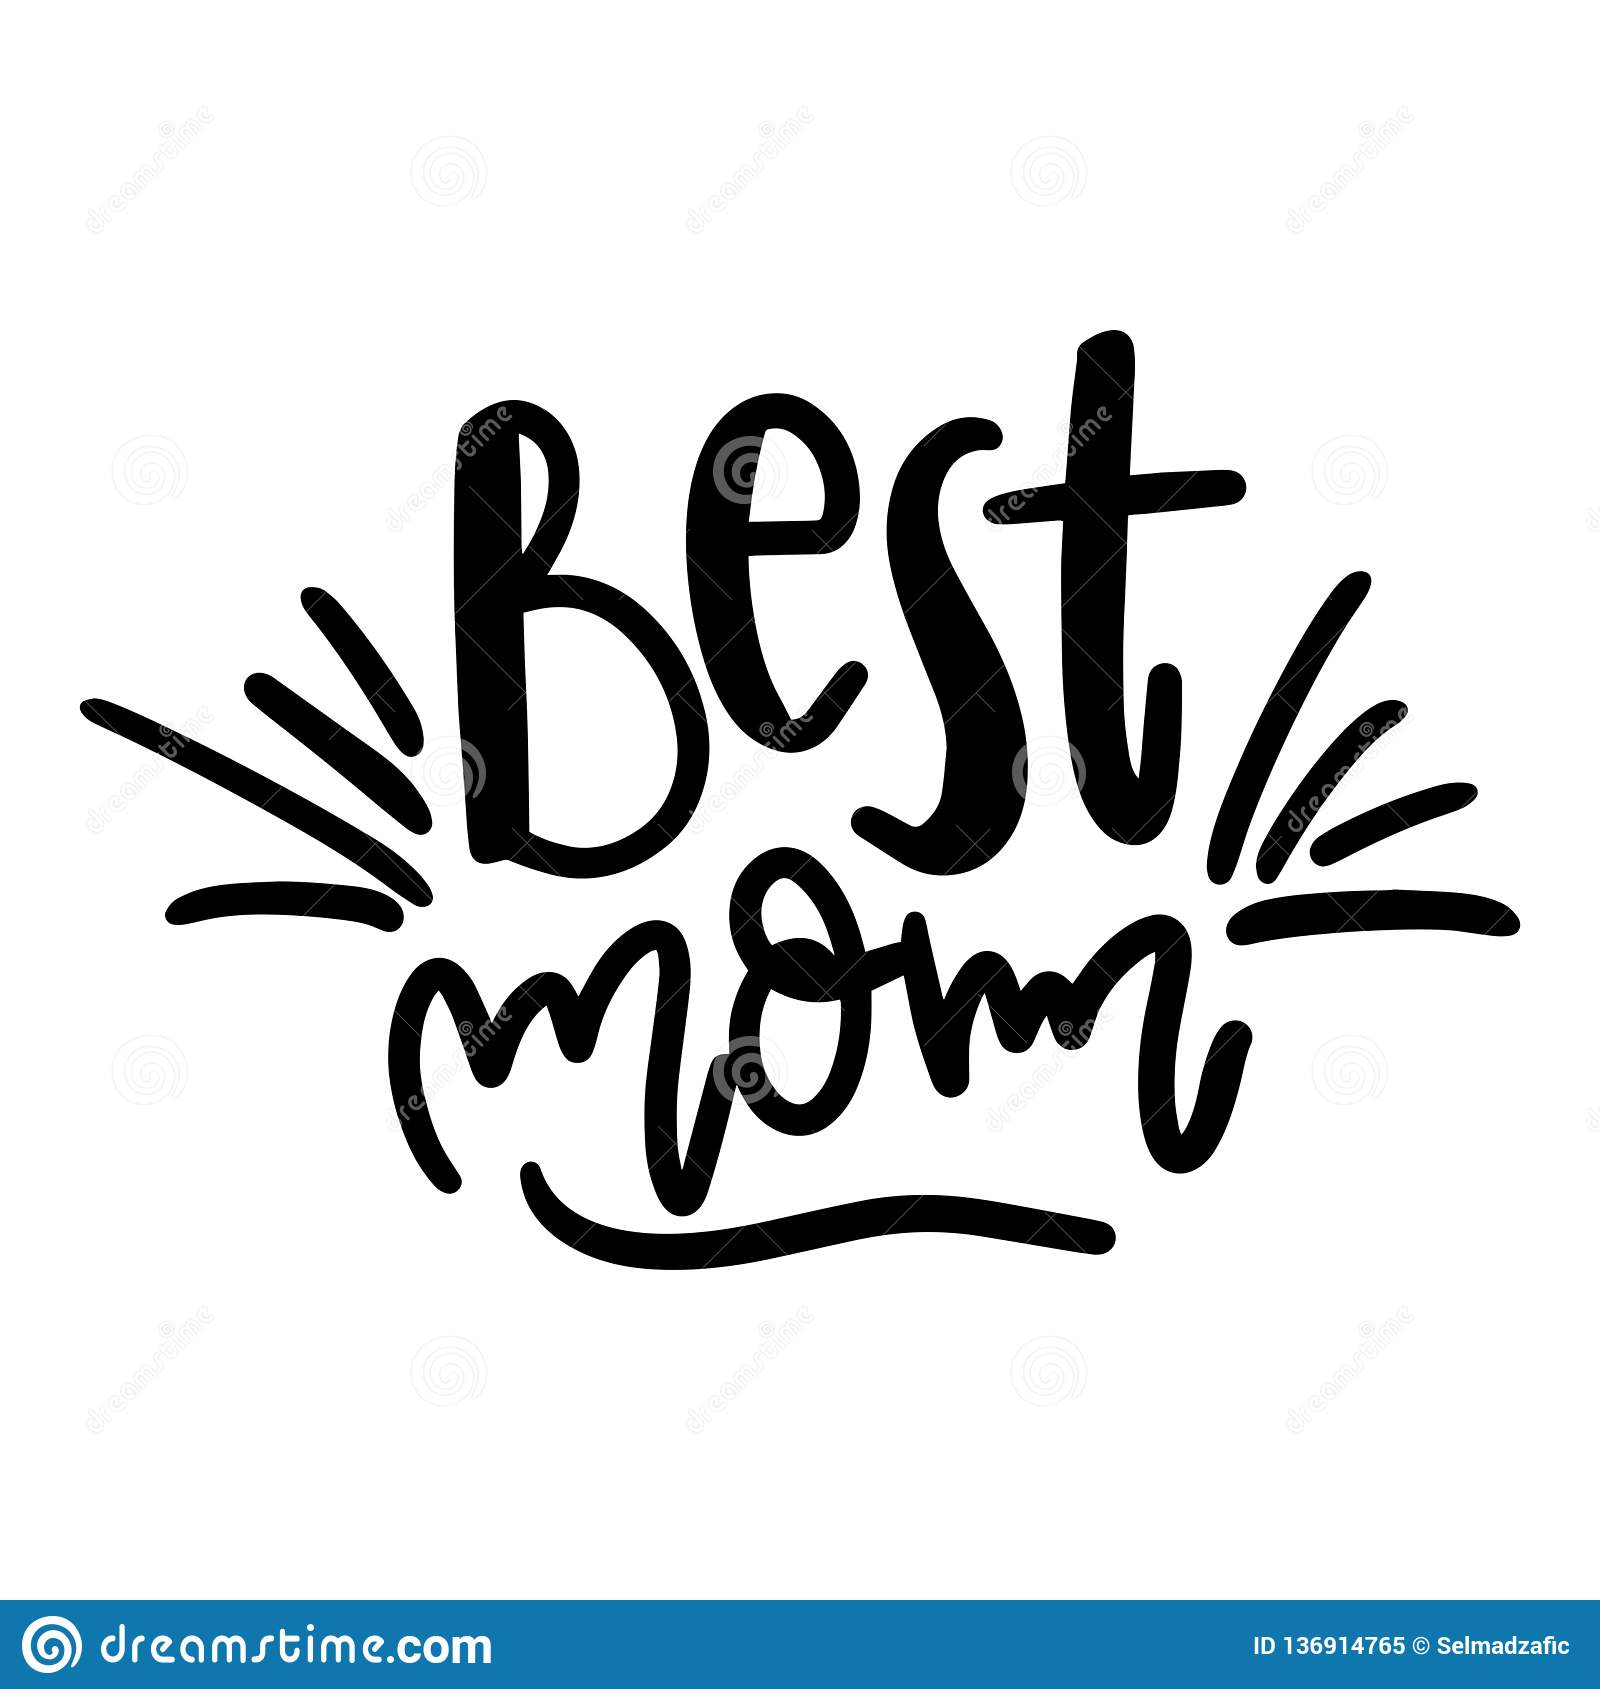 Best Mom Ever Quotes Quote Saying Best Mom For Greeting Card Design